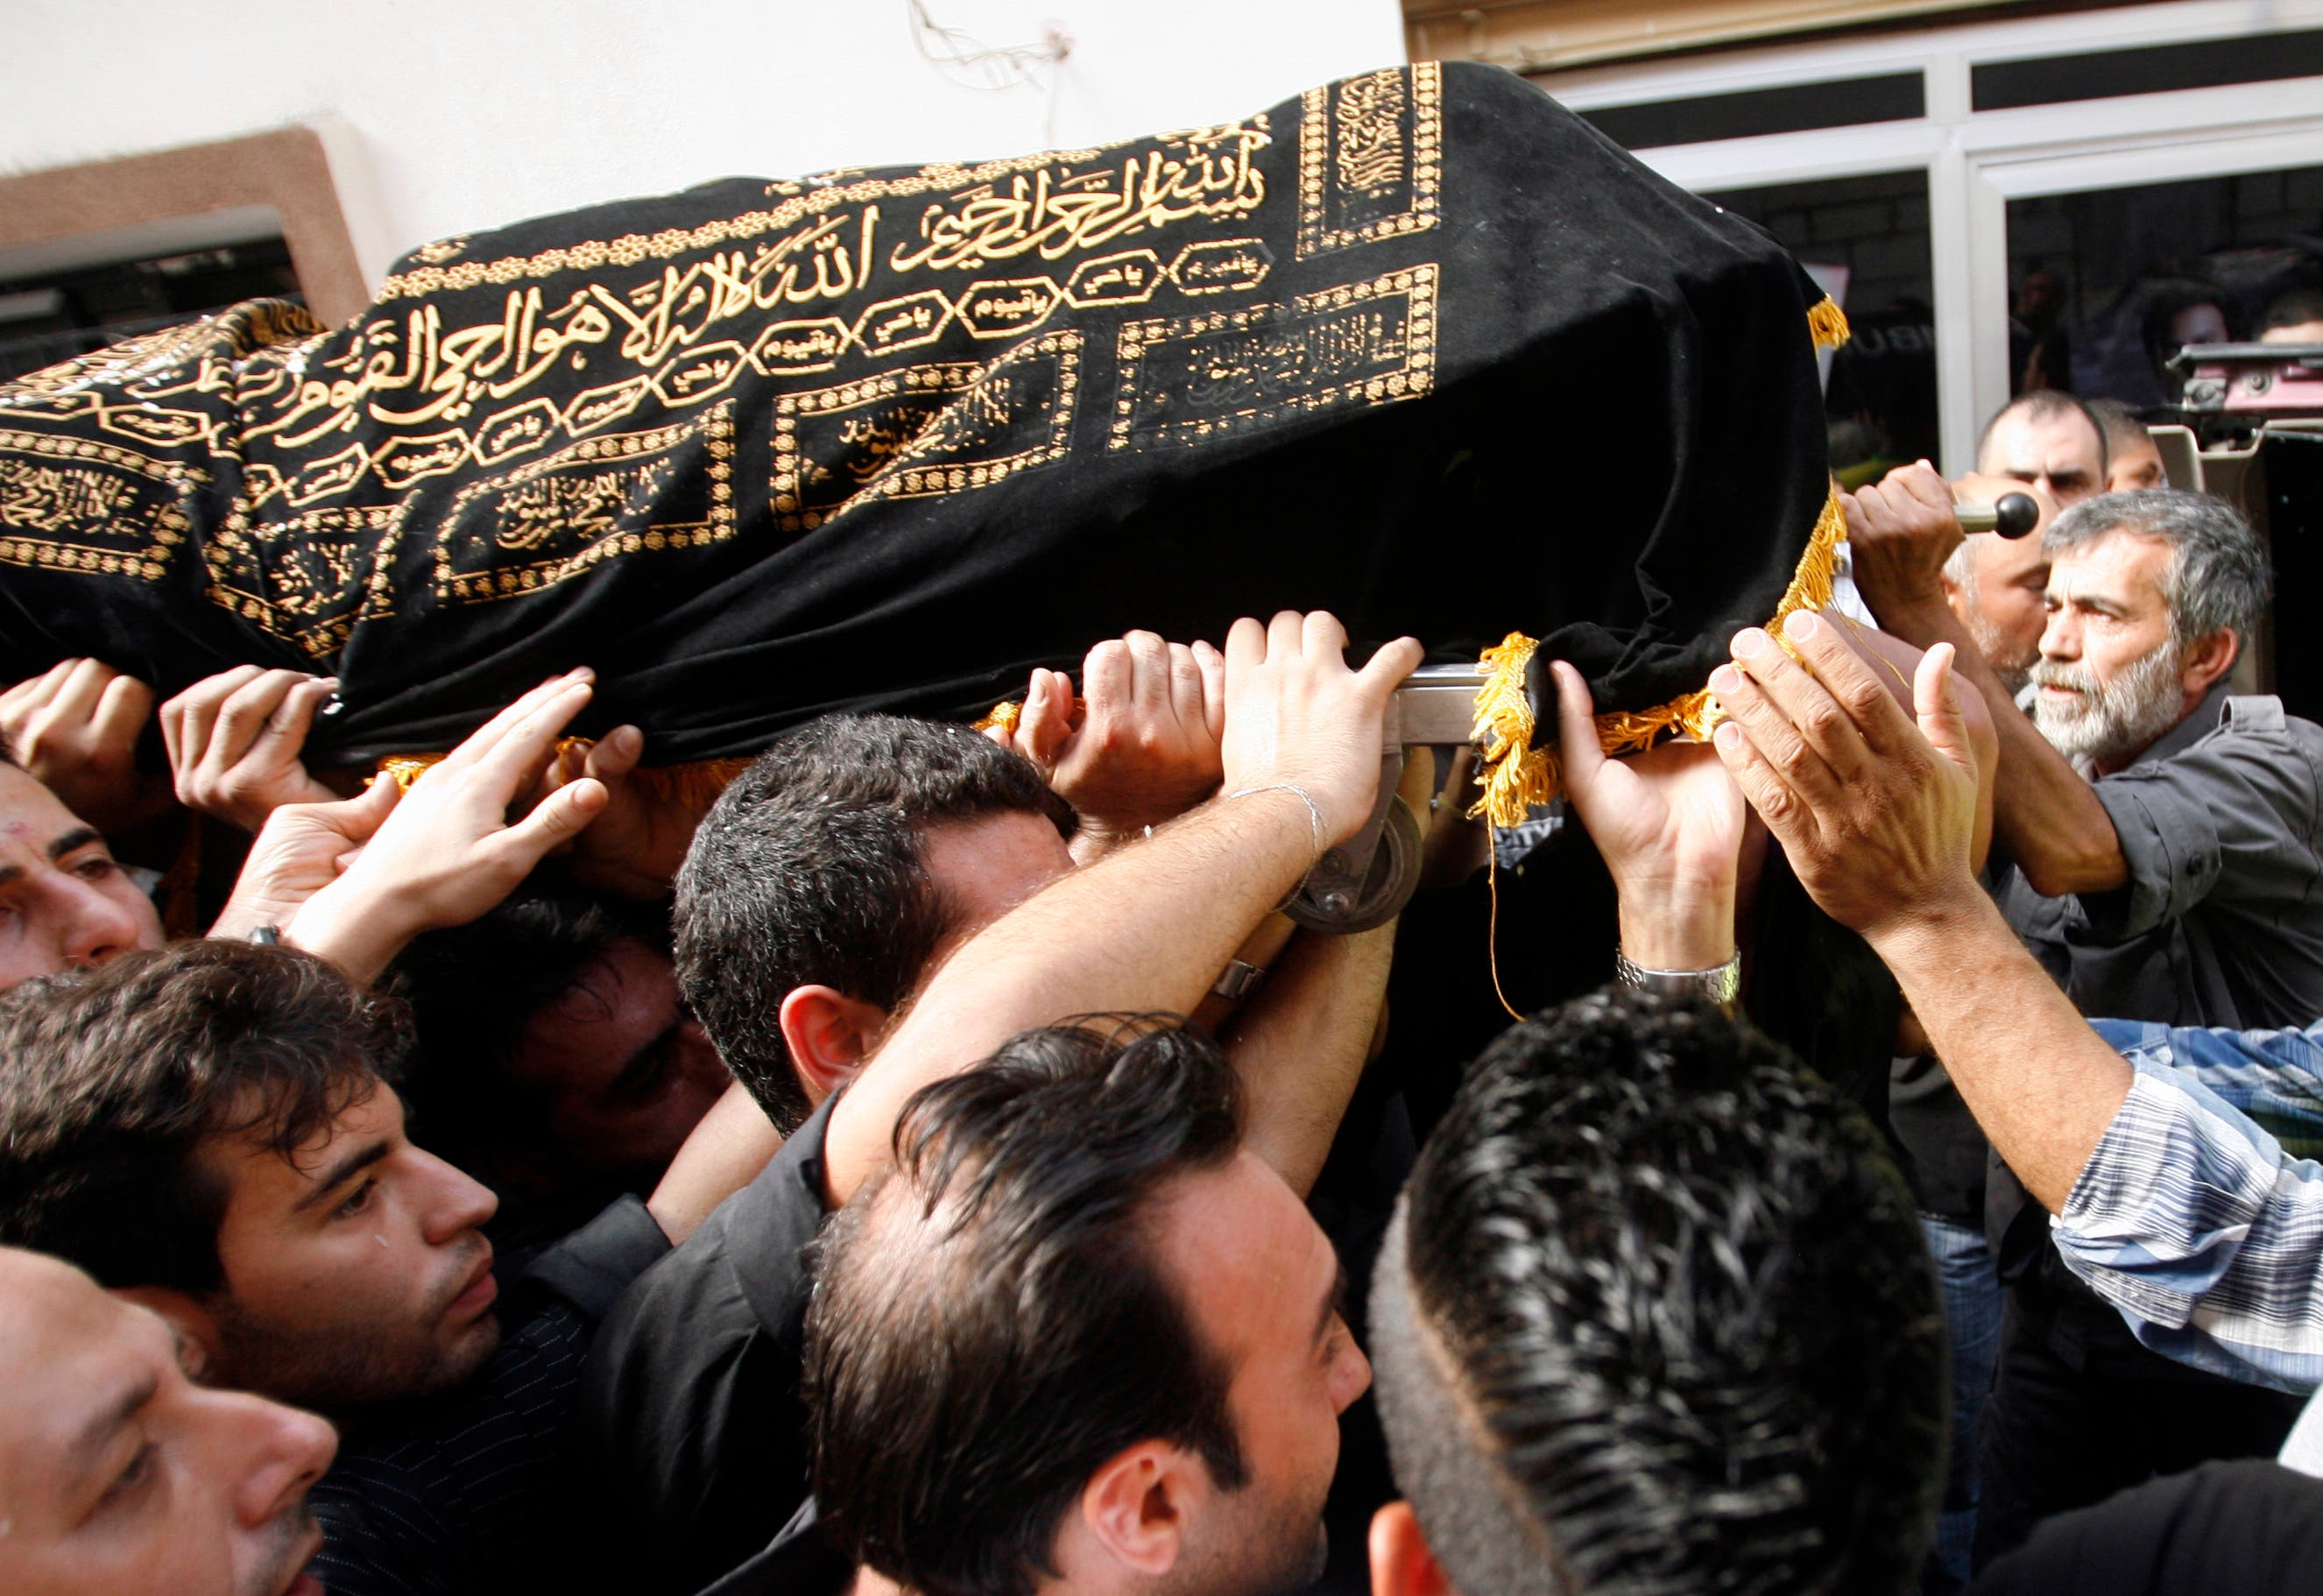 Mourners carry the body of Hassan Ramadan, who was killed in a blast in Beirut earlier in the week, during a funeral in the southern Lebanese village of Jwaya (AFP/MAHMOUD ZAYYAT)